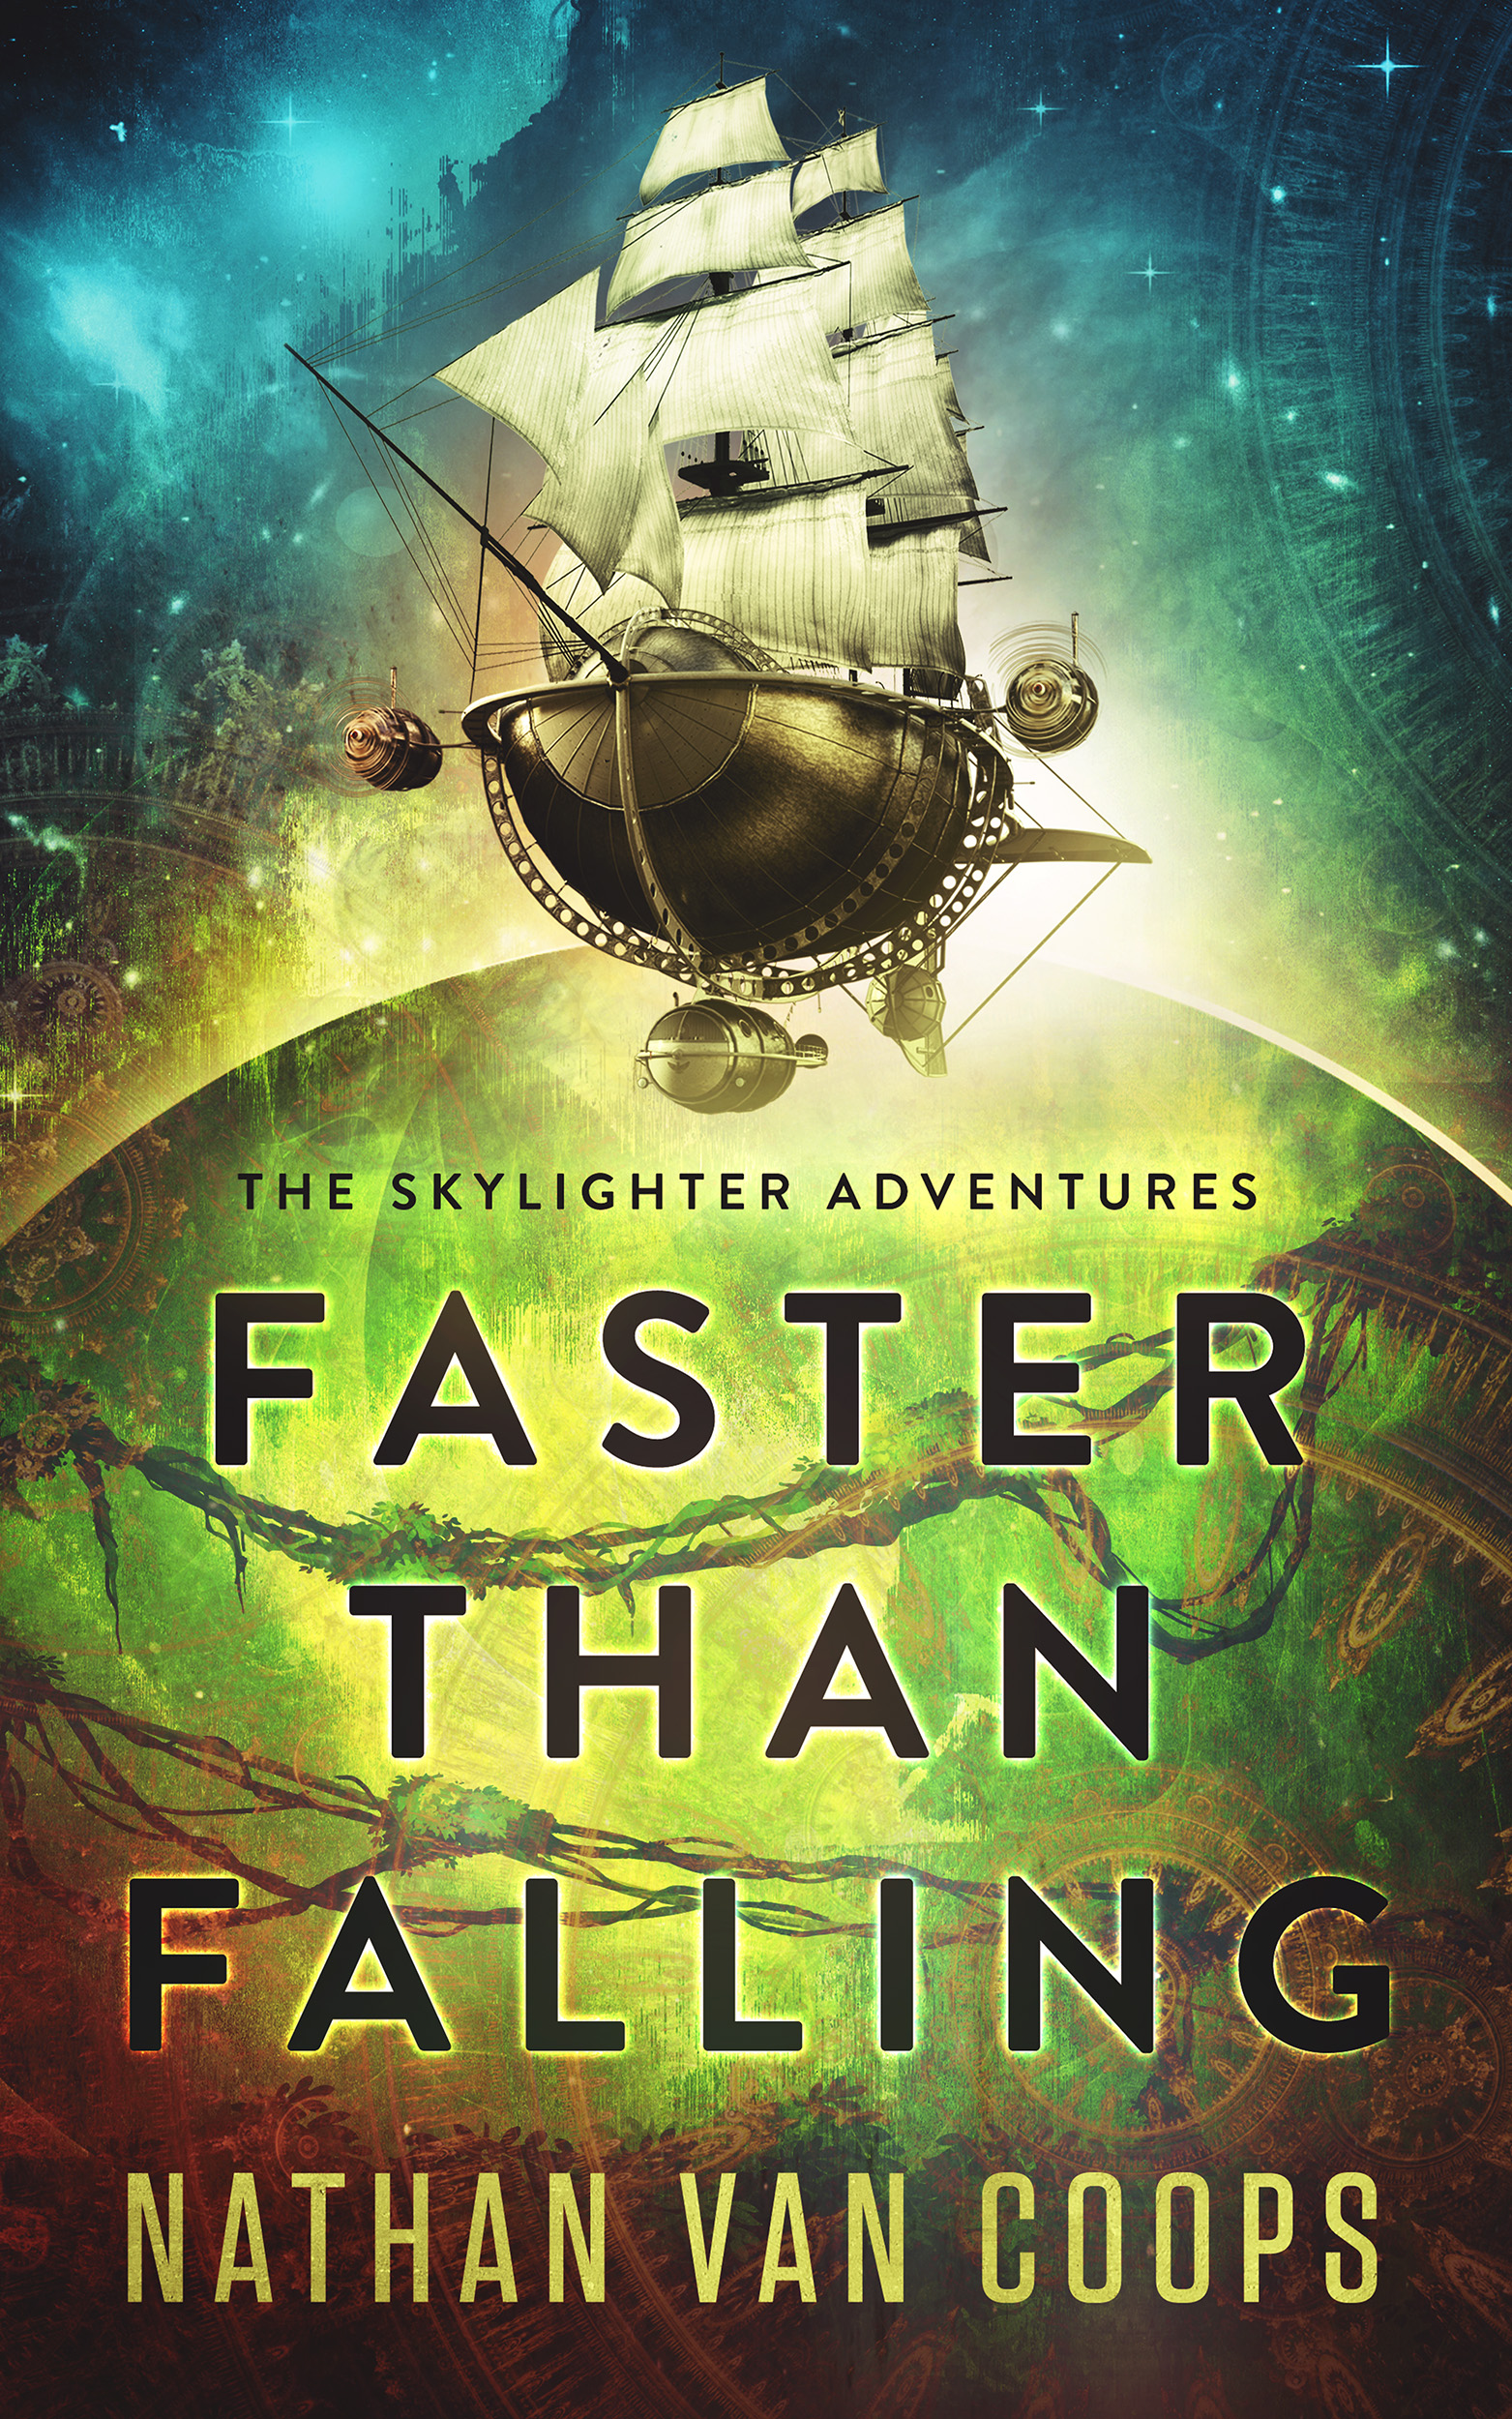 Faster Than Falling - Ebook Small.jpg